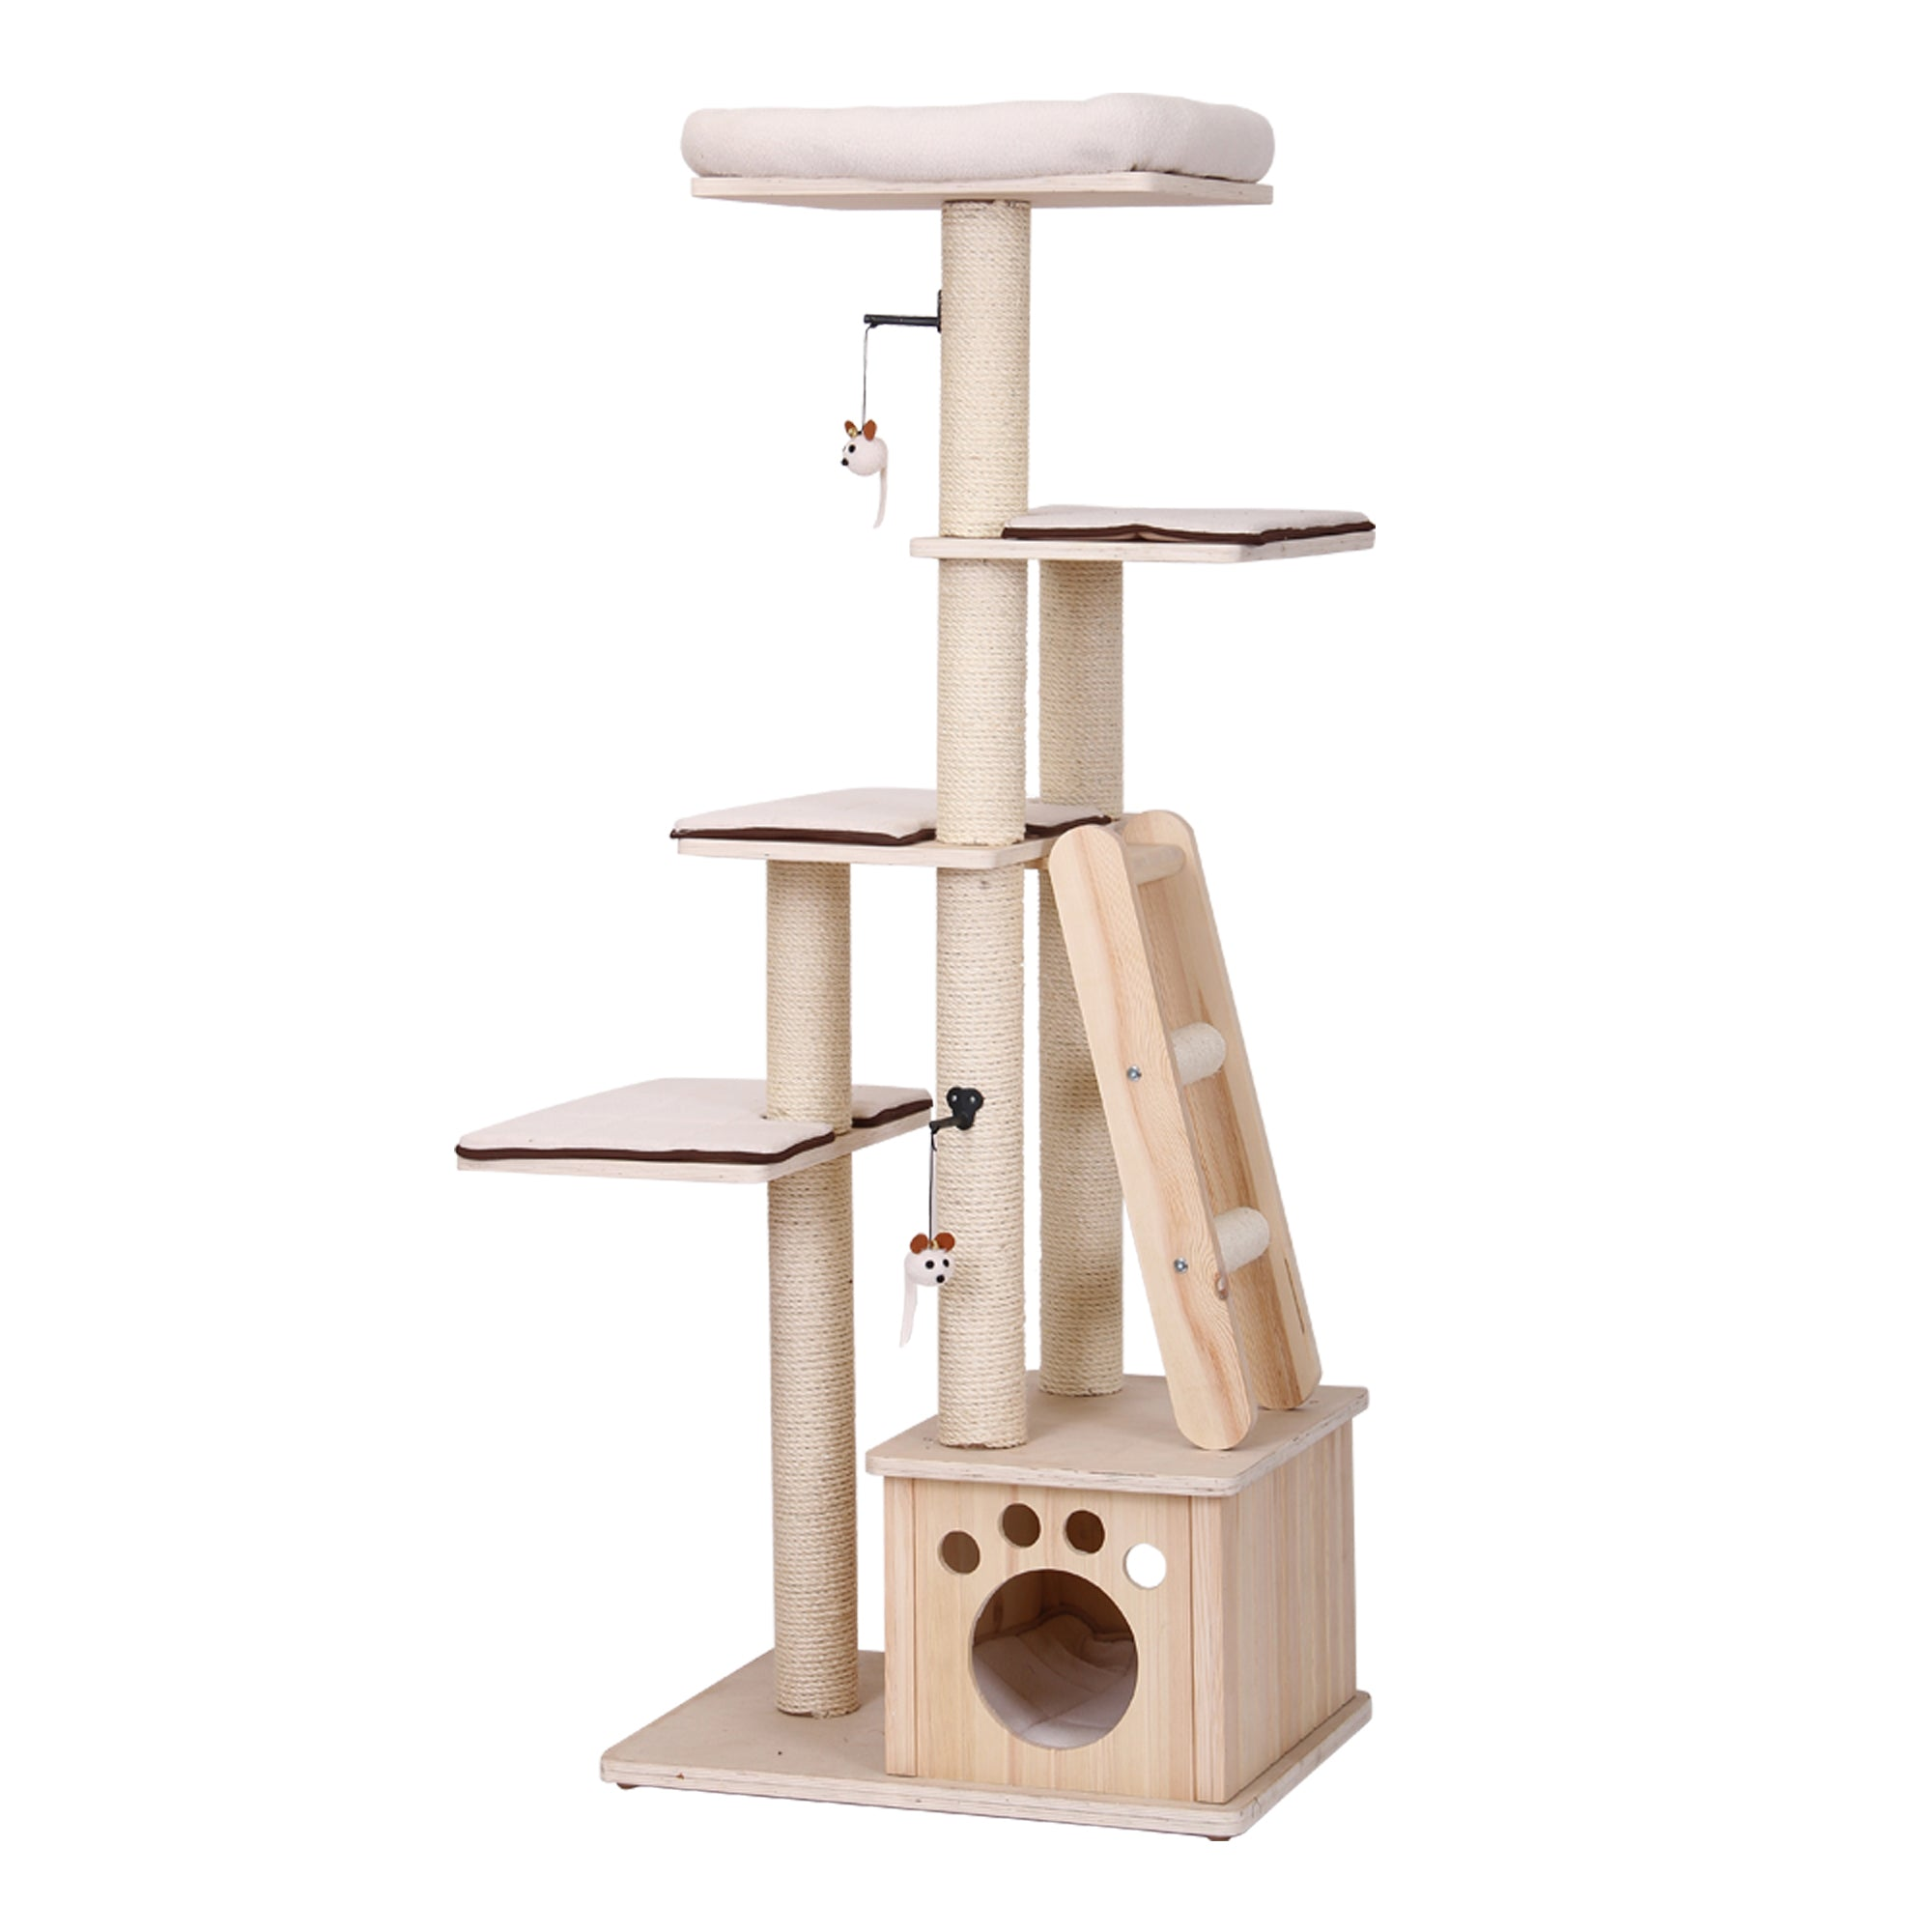 tower cat hammock s bed photo tree estaci gatos anipal with our pin the para juegos hunt n and de